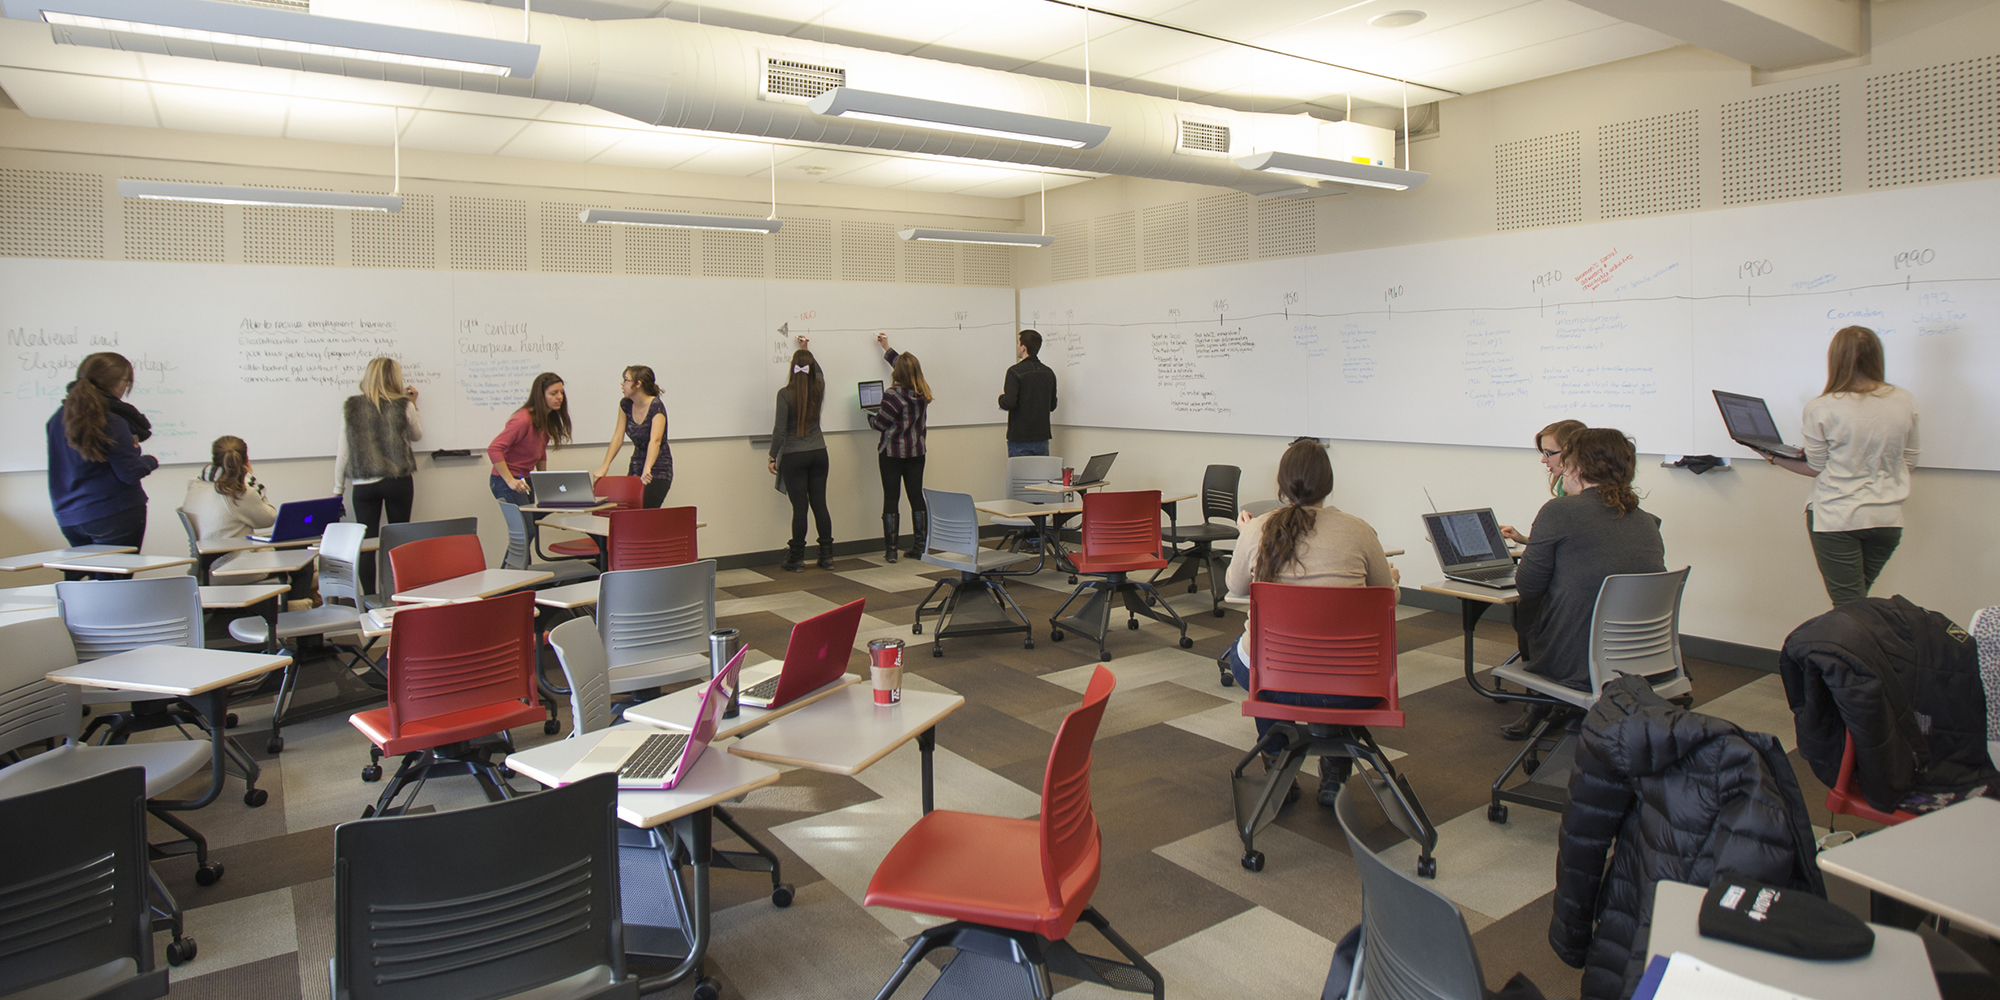 Classroom Design Education Definition ~ Ellis hall active learning classroom flickr photo sharing